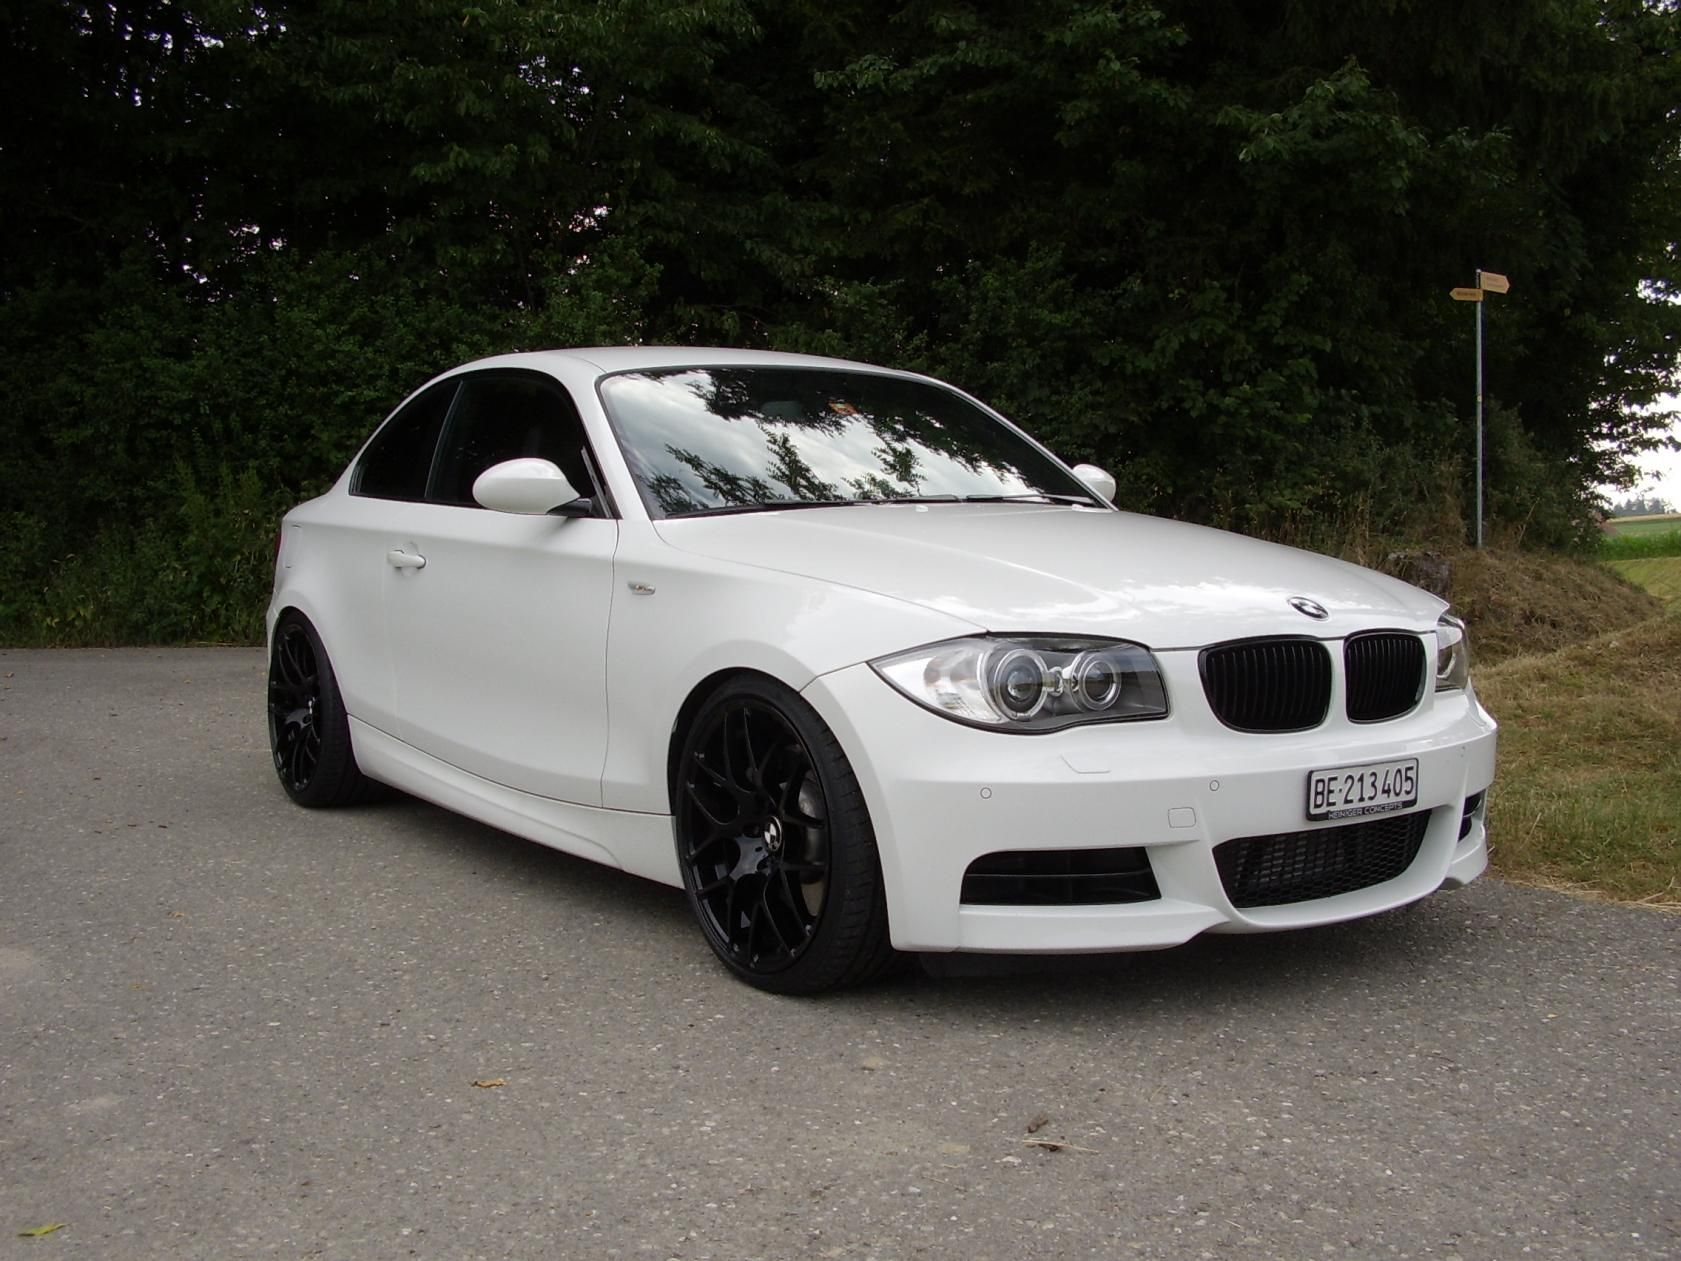 official alpine white coupe e82 thread page 13 bmw. Black Bedroom Furniture Sets. Home Design Ideas